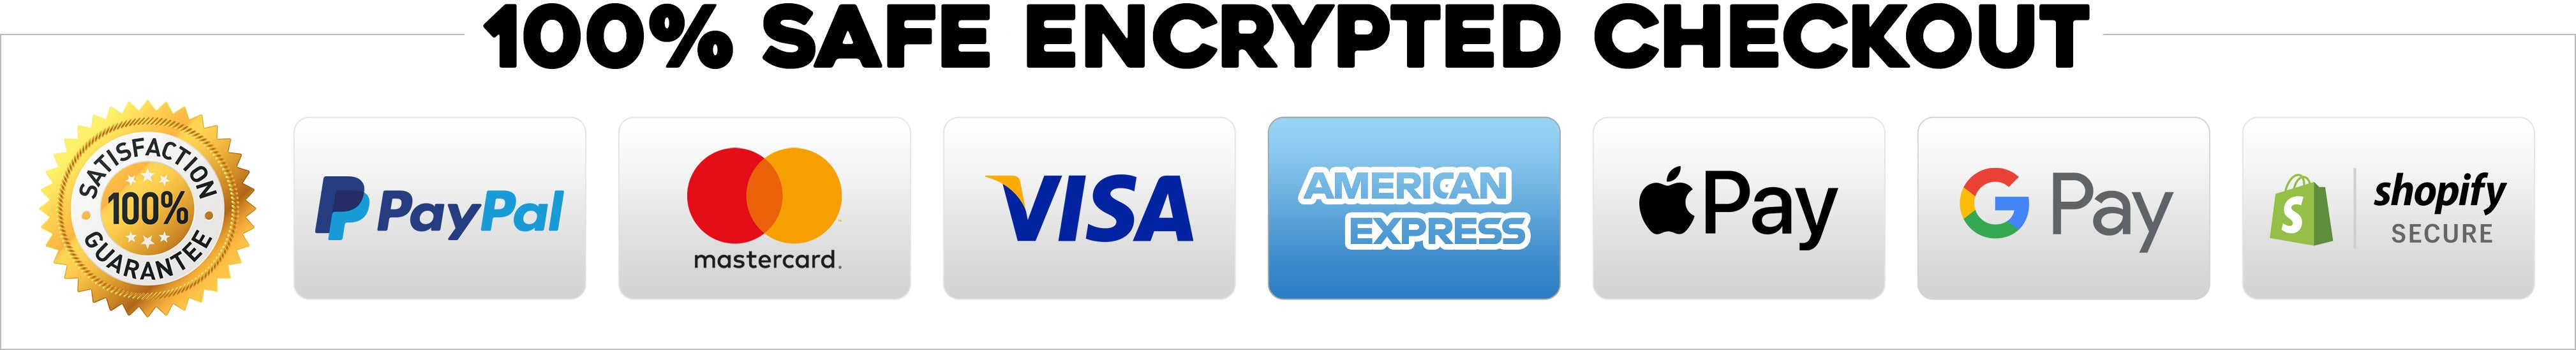 100% SAFE ENCRYPTED CHECKOUT